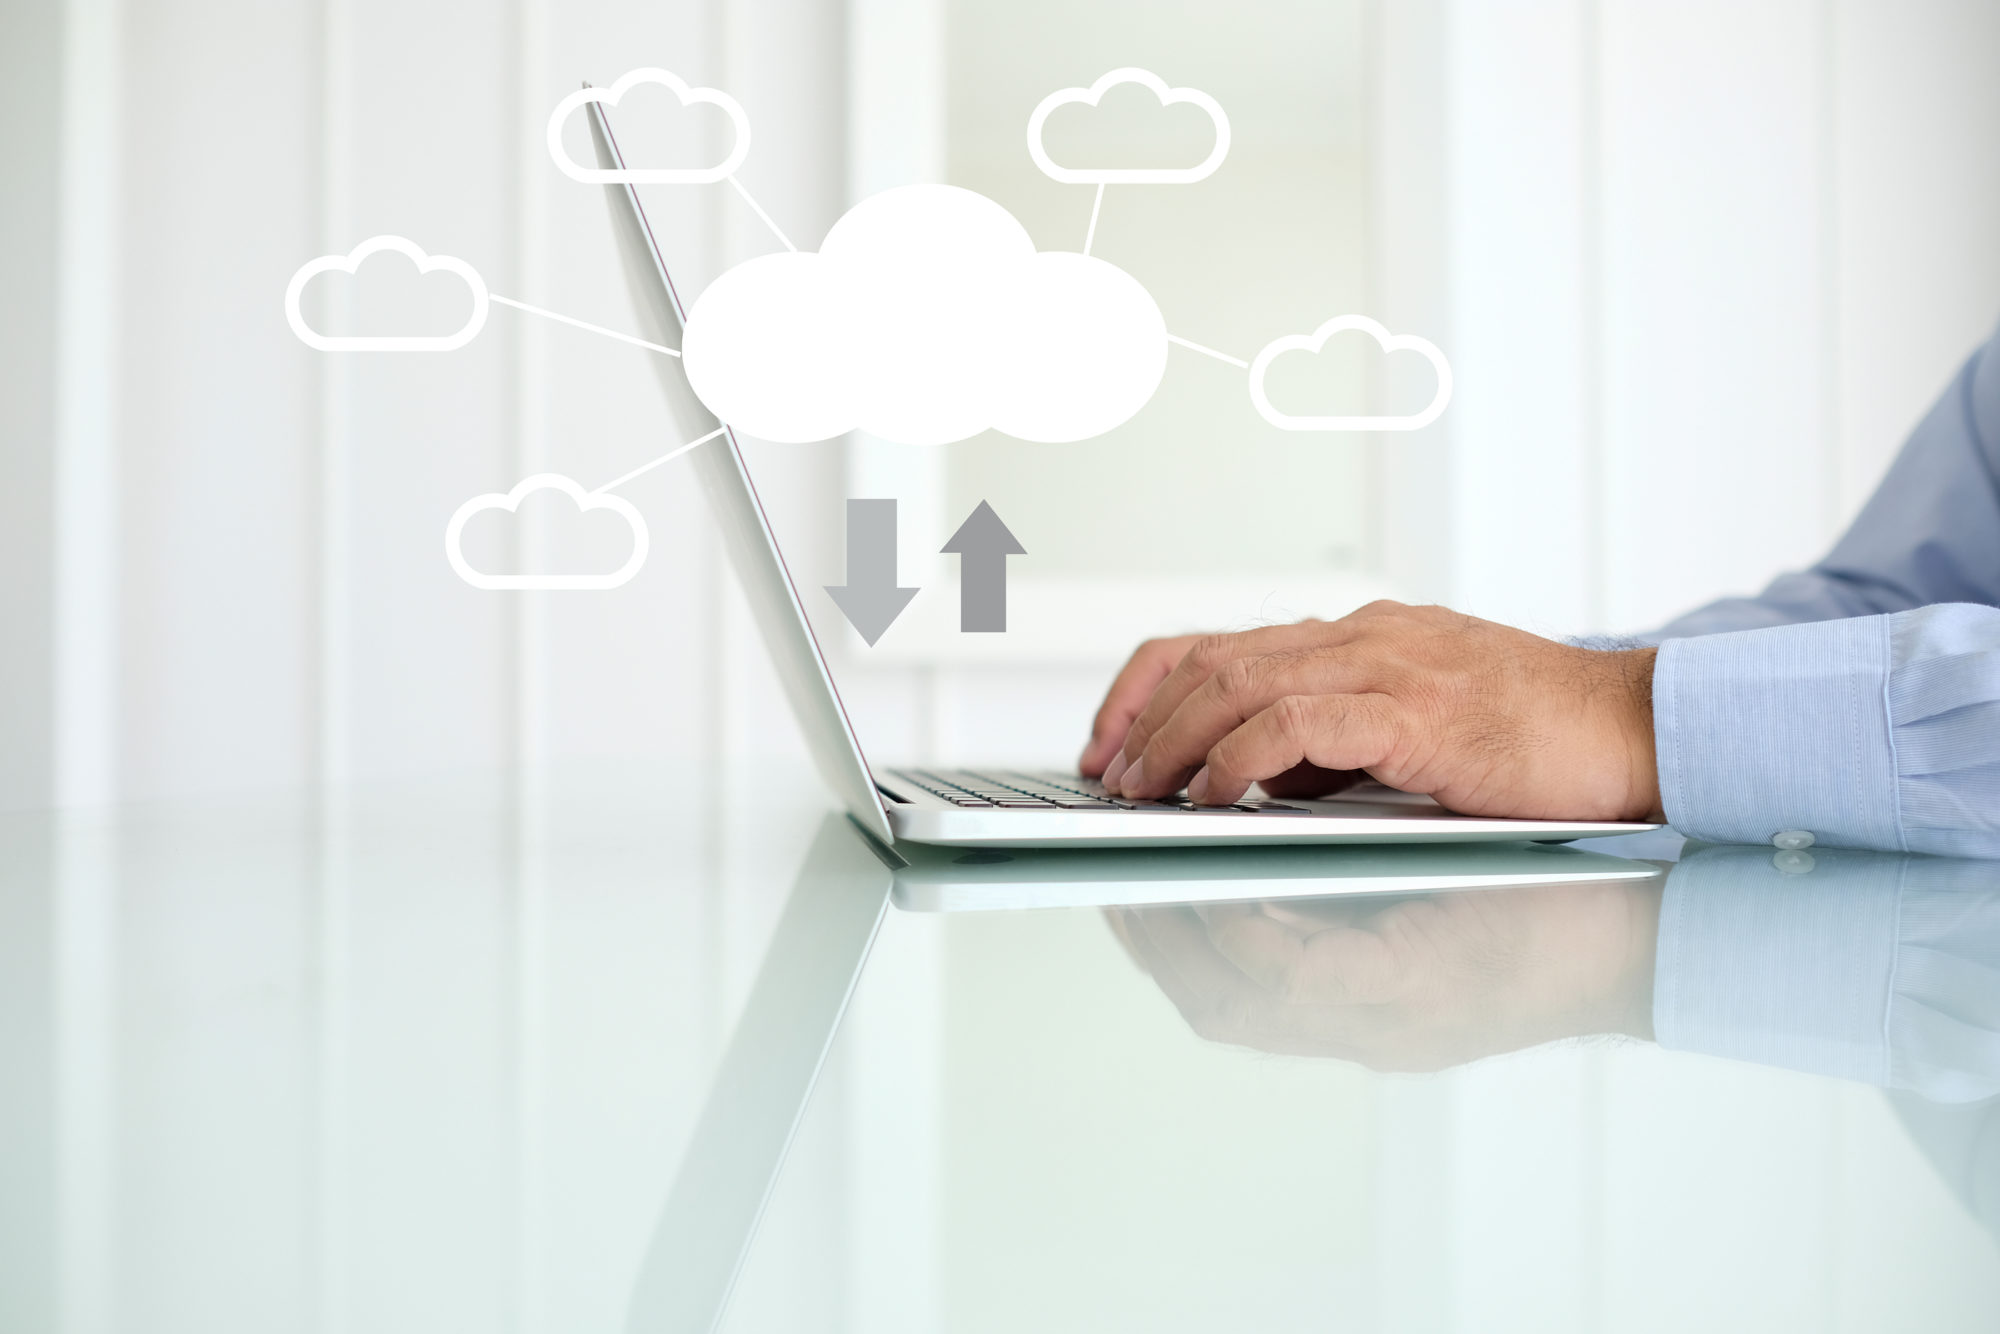 Is the Windows 365 Cloud PC Right for You? (Pros, Cons & Costs)